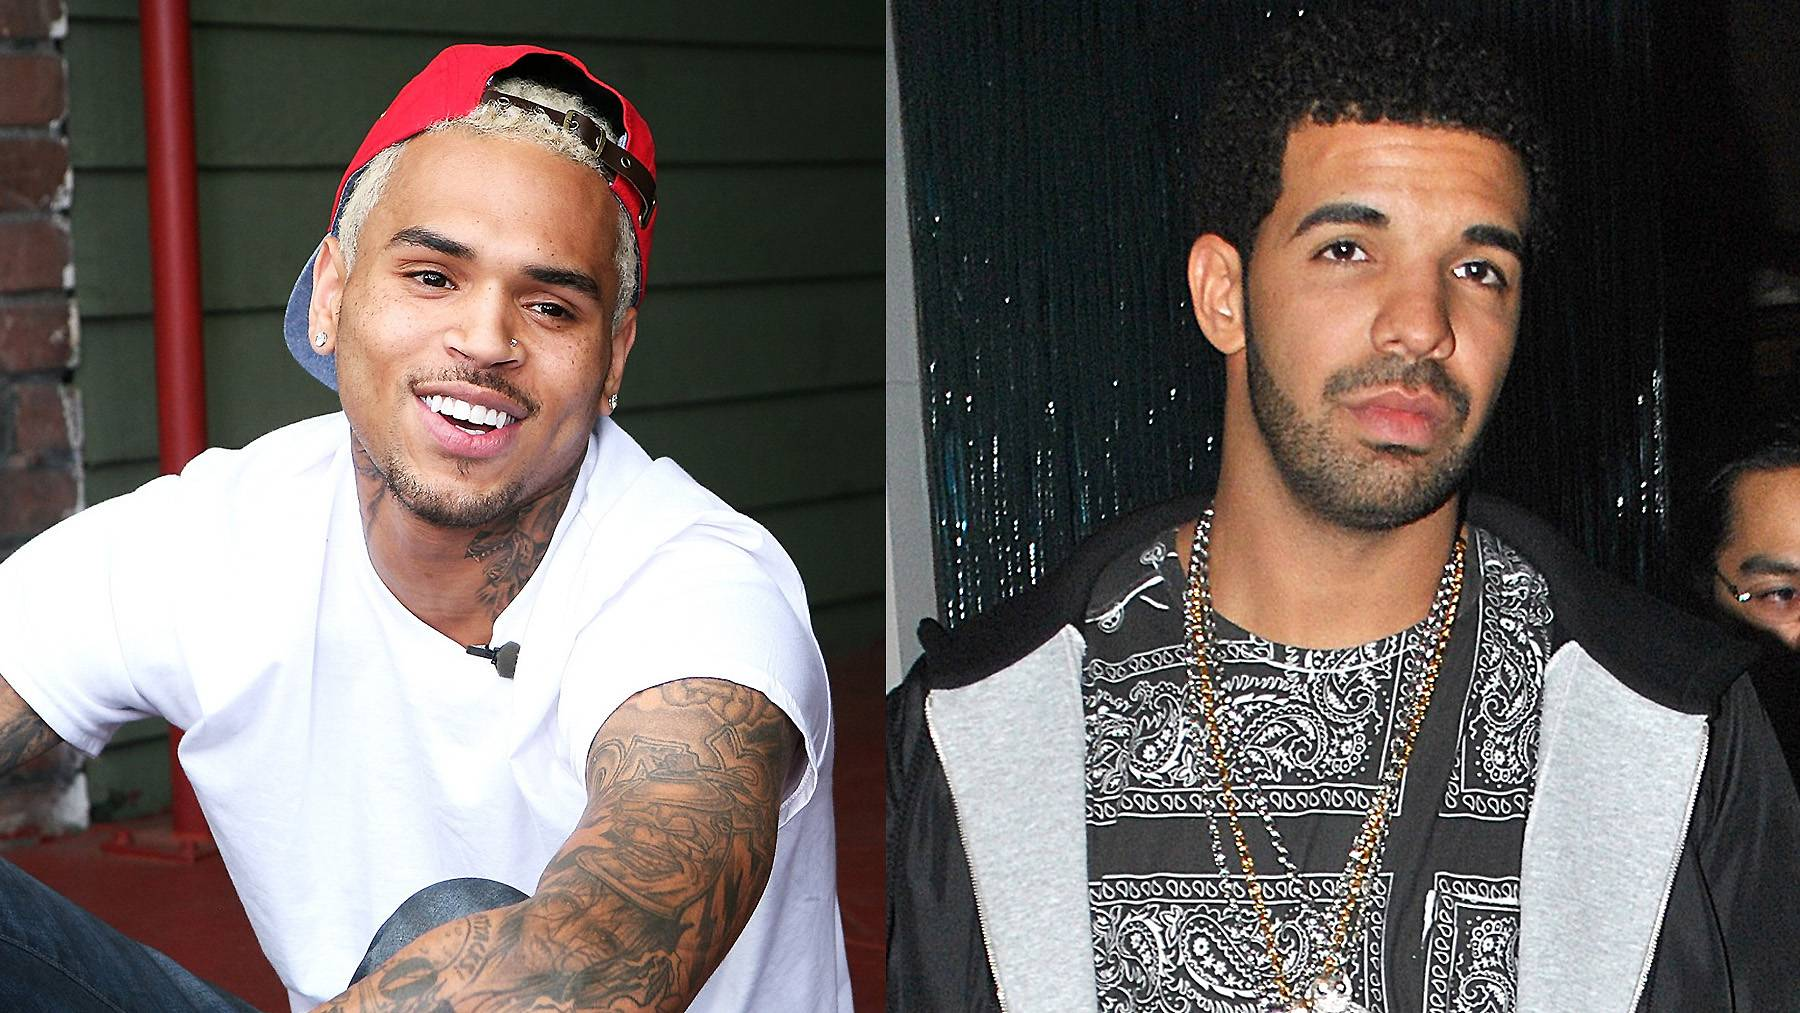 """Chris BrownSpeaks Out Following Brawl With Drake - Before they were cordial enough to join forces in the name of music,Chris Brown and Drake were noticeably at odds, and the public was well aware. Their beef reached new heights when the pair's entourages got into a physical altercation at a nightclub. Following the incident, Brown tweeted about what went down, but deleted it almost immediately after.Tweet: """"Ok! N----s stand behind security!!!! Ok! U don't pay them enough!""""(Photos from left: Maury Phillips/WireImage, JD Pht Bx & MCGM/Splash News)"""